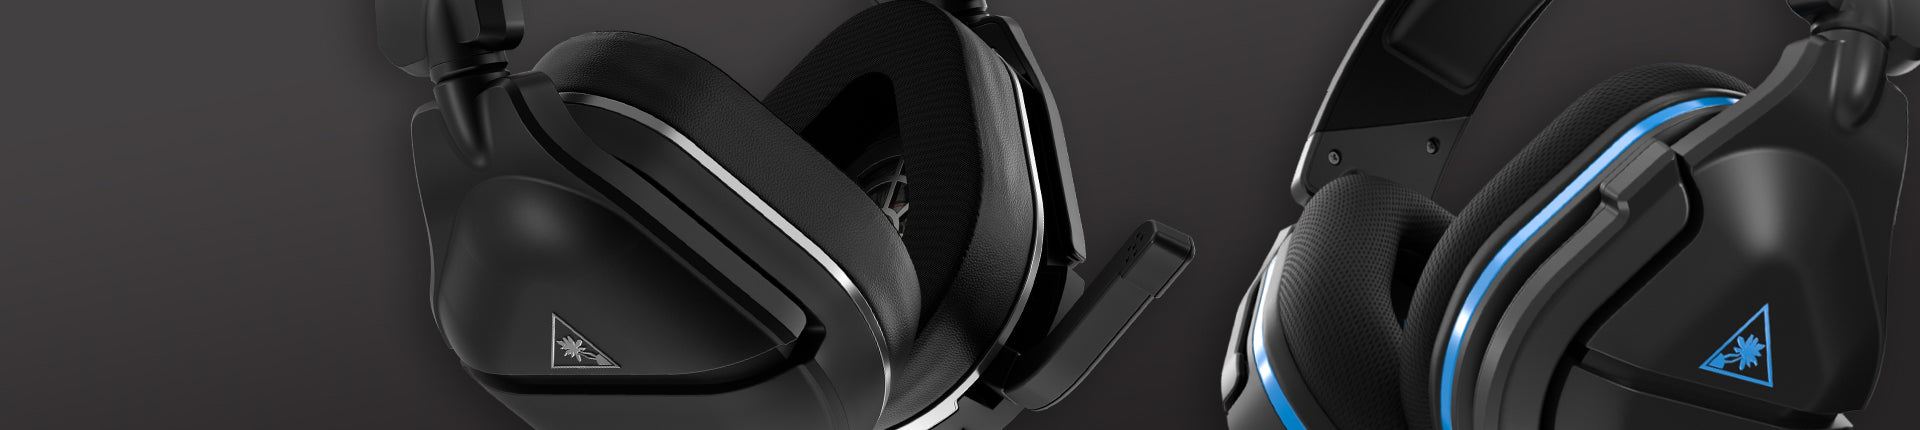 Wireless PS5™ Headsets